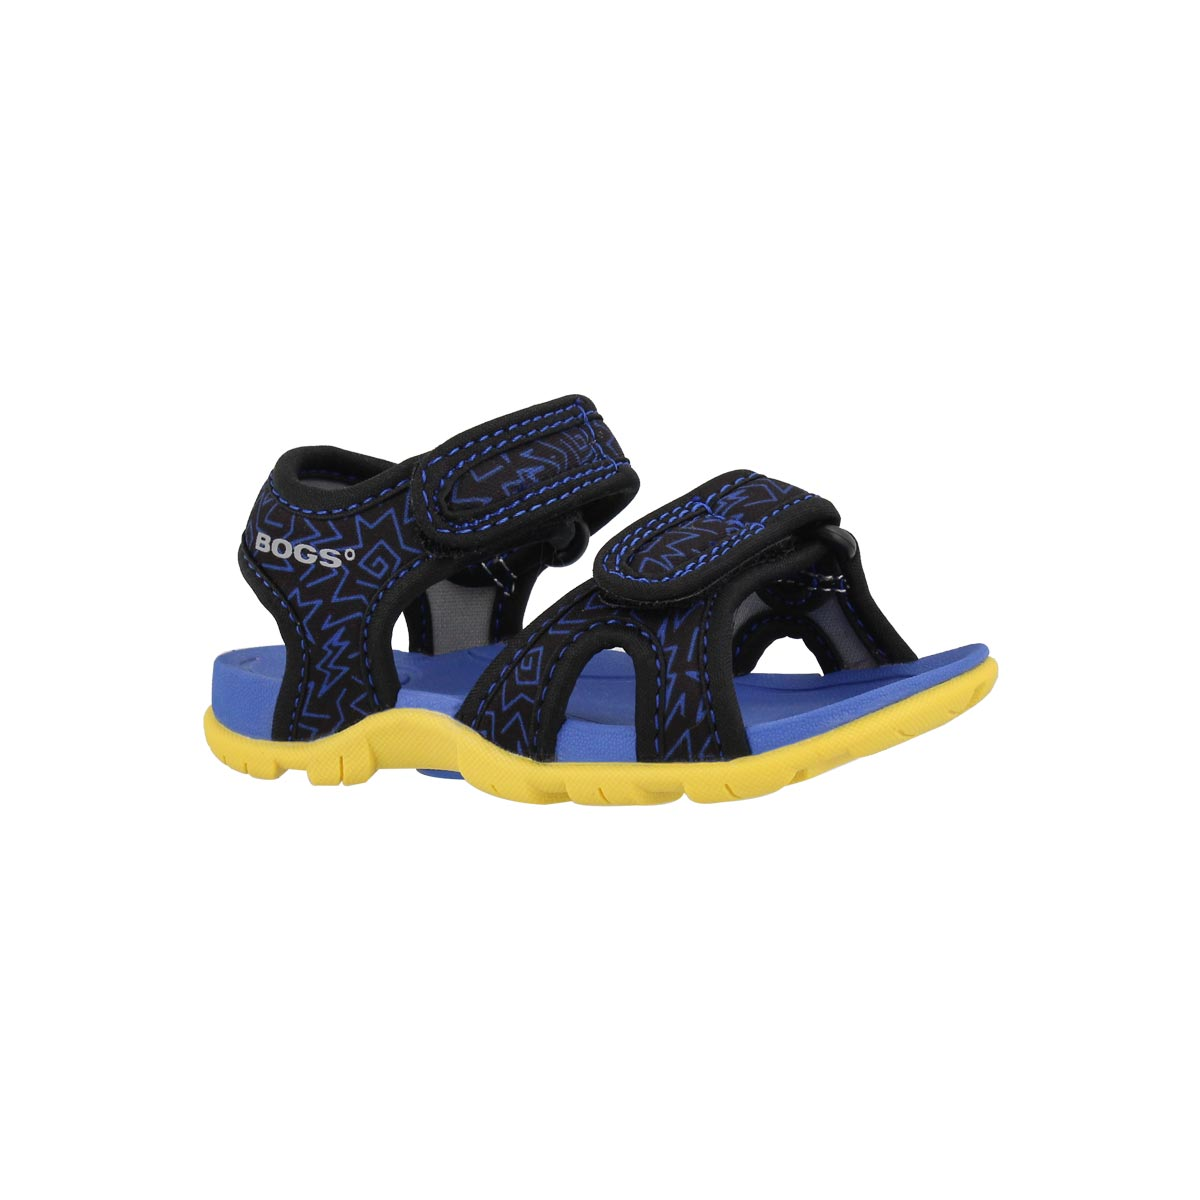 Infants' WHITEFISH 80's bk mlti waterproof sandals